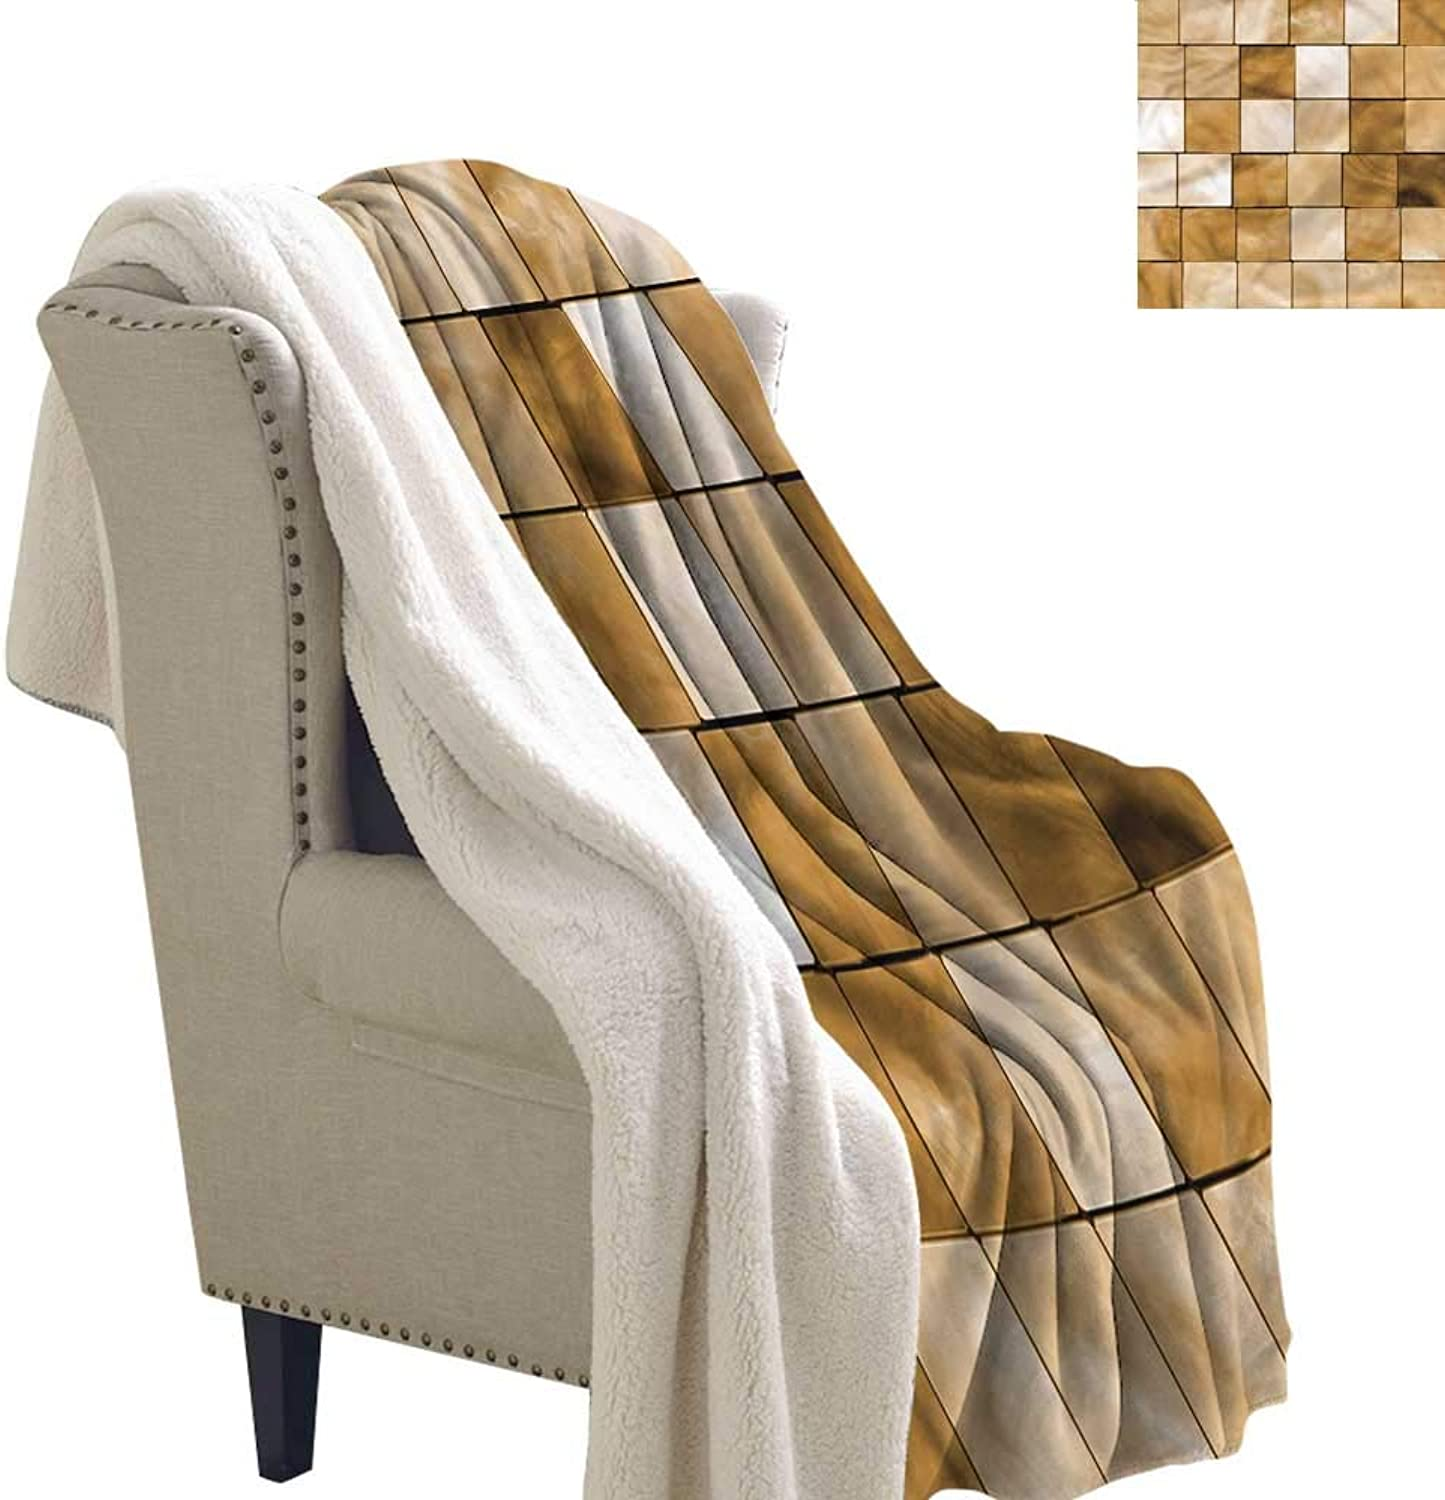 Beige Flannel Bed Blankets Wood Cubes Squares Mosaic Warm Breathable Comforter for Girls Kids Adults 60x32 Inch